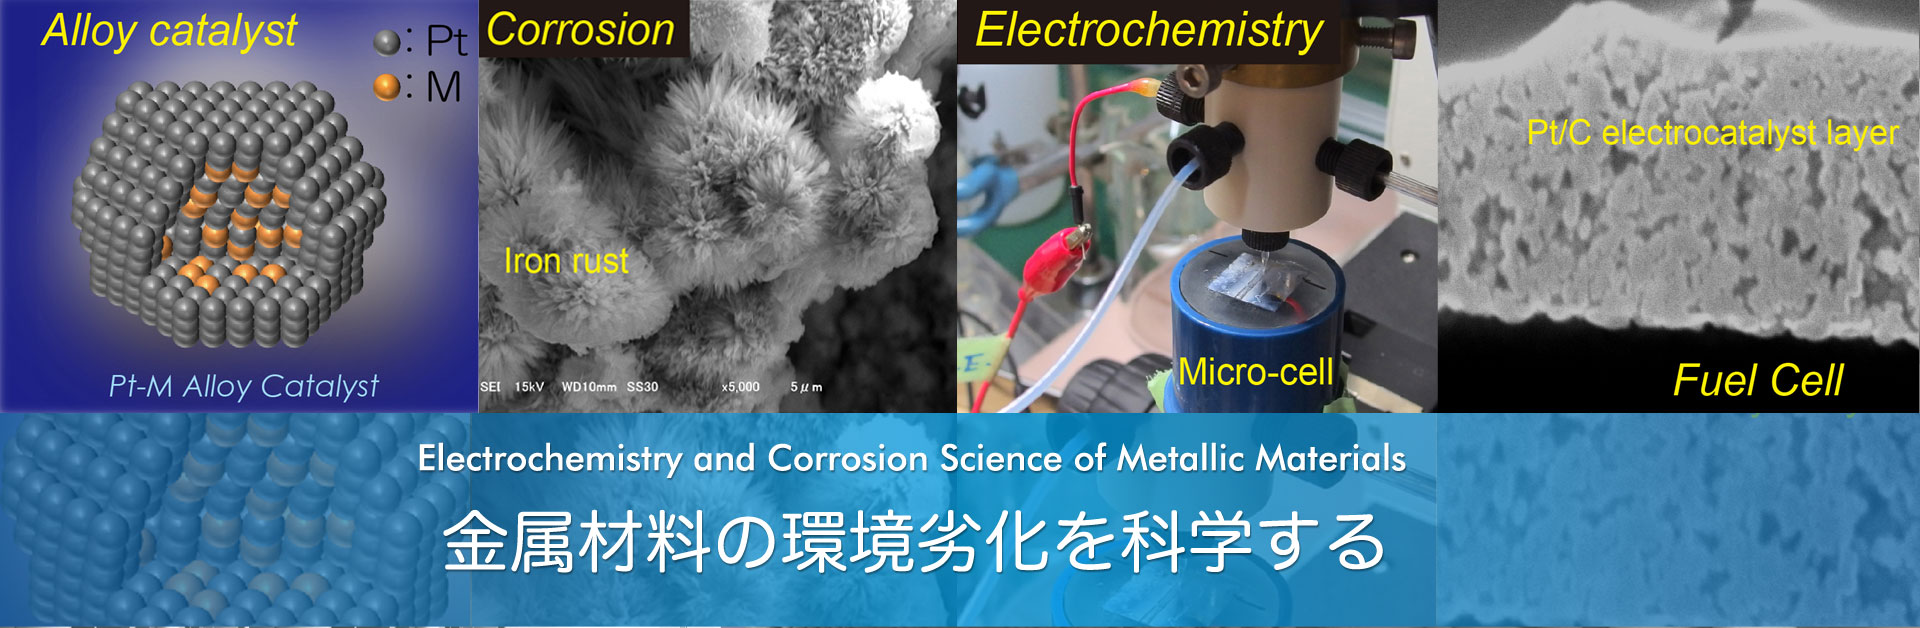 Electrochemistry and Corrosion Science of Metallic Materials